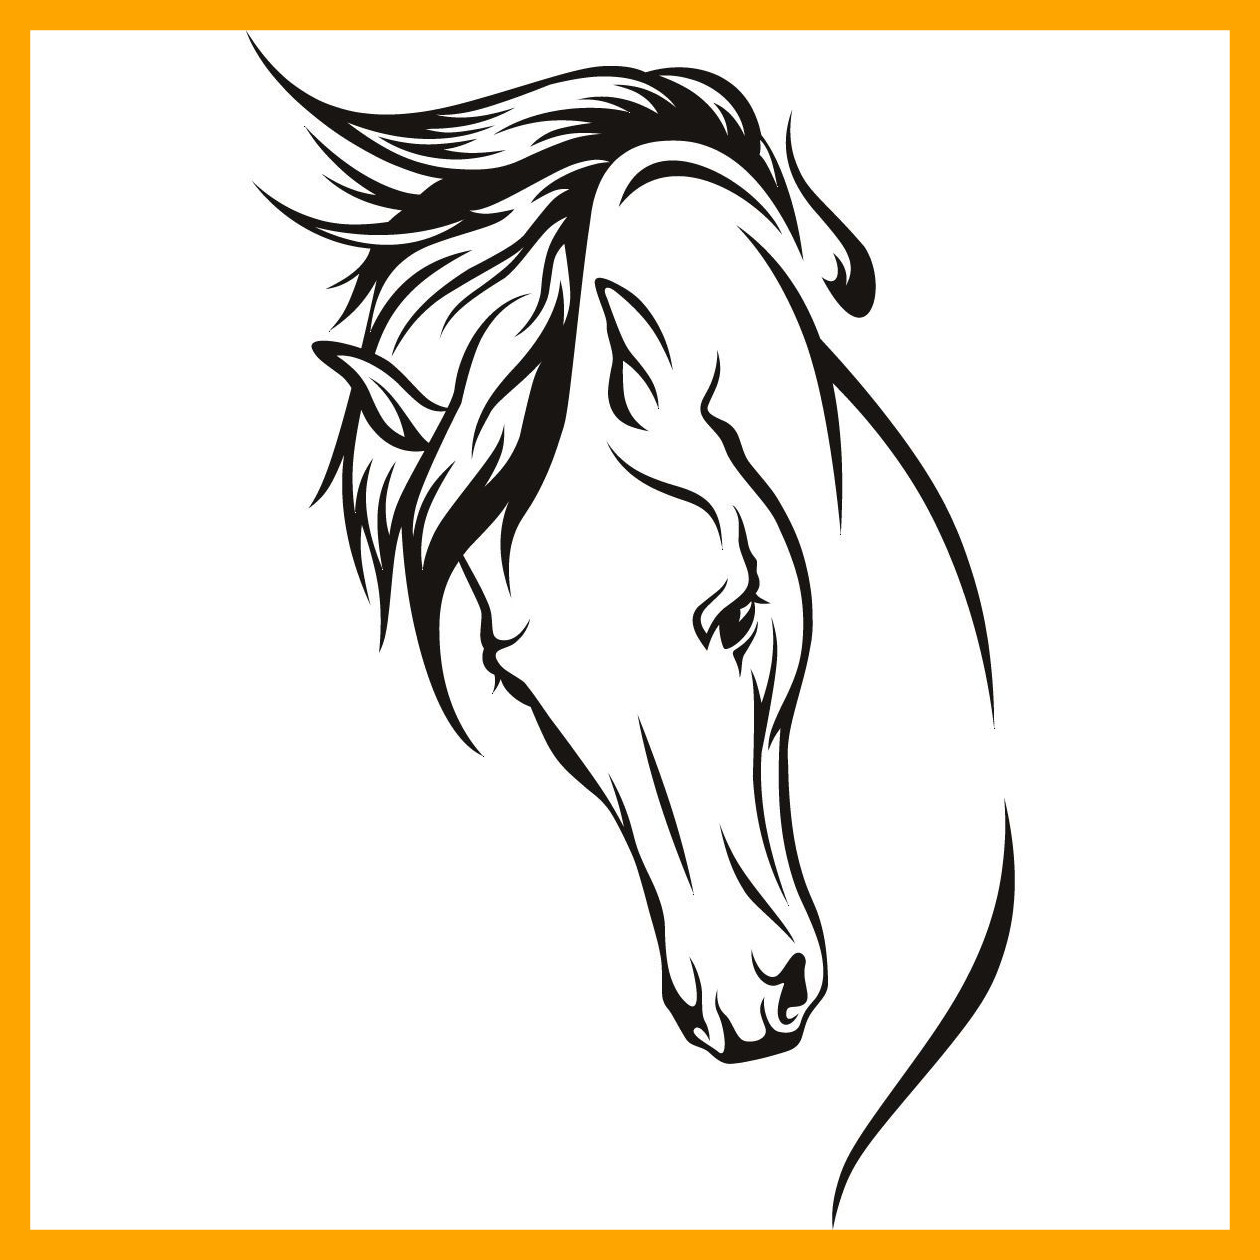 1260x1260 Best For U Horse Face Clip Art Black And White Drawings Head